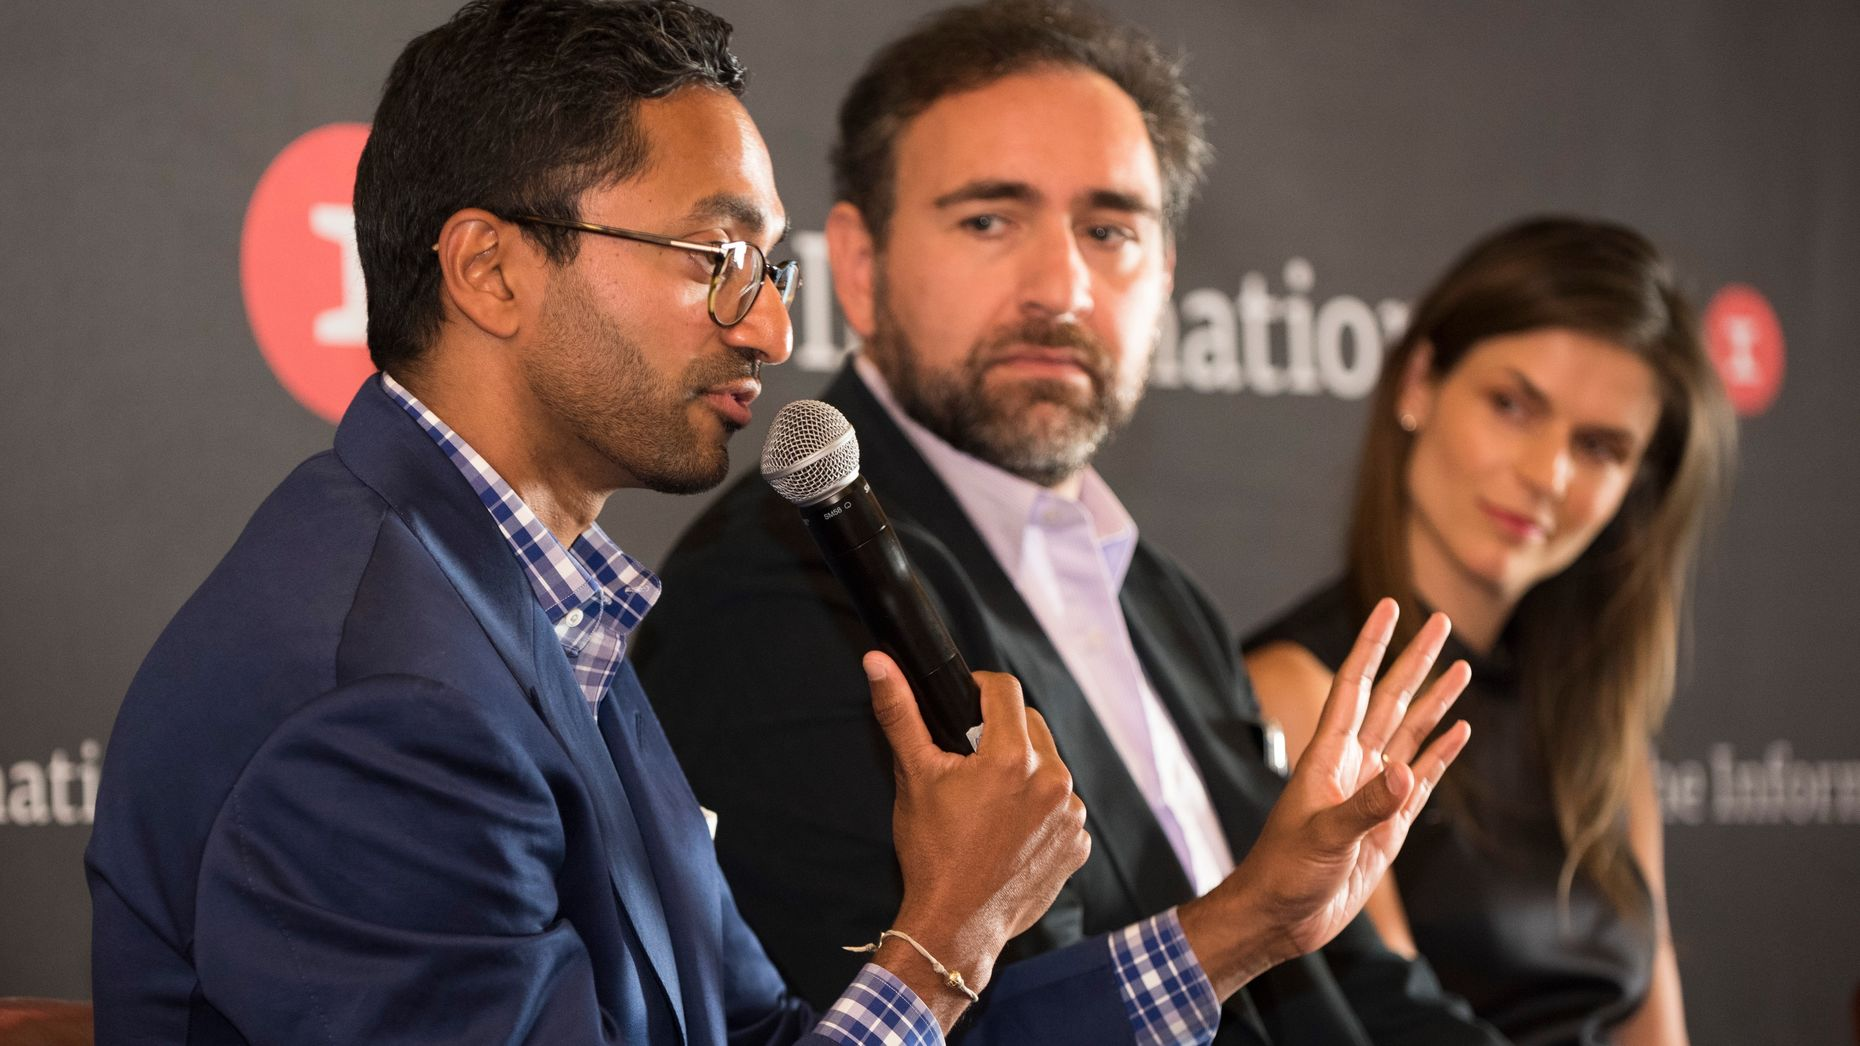 Chamath Palihapitiya, left, Ali Rowghani, center, and Lauren Gross, right. Photo by Erin Beach.